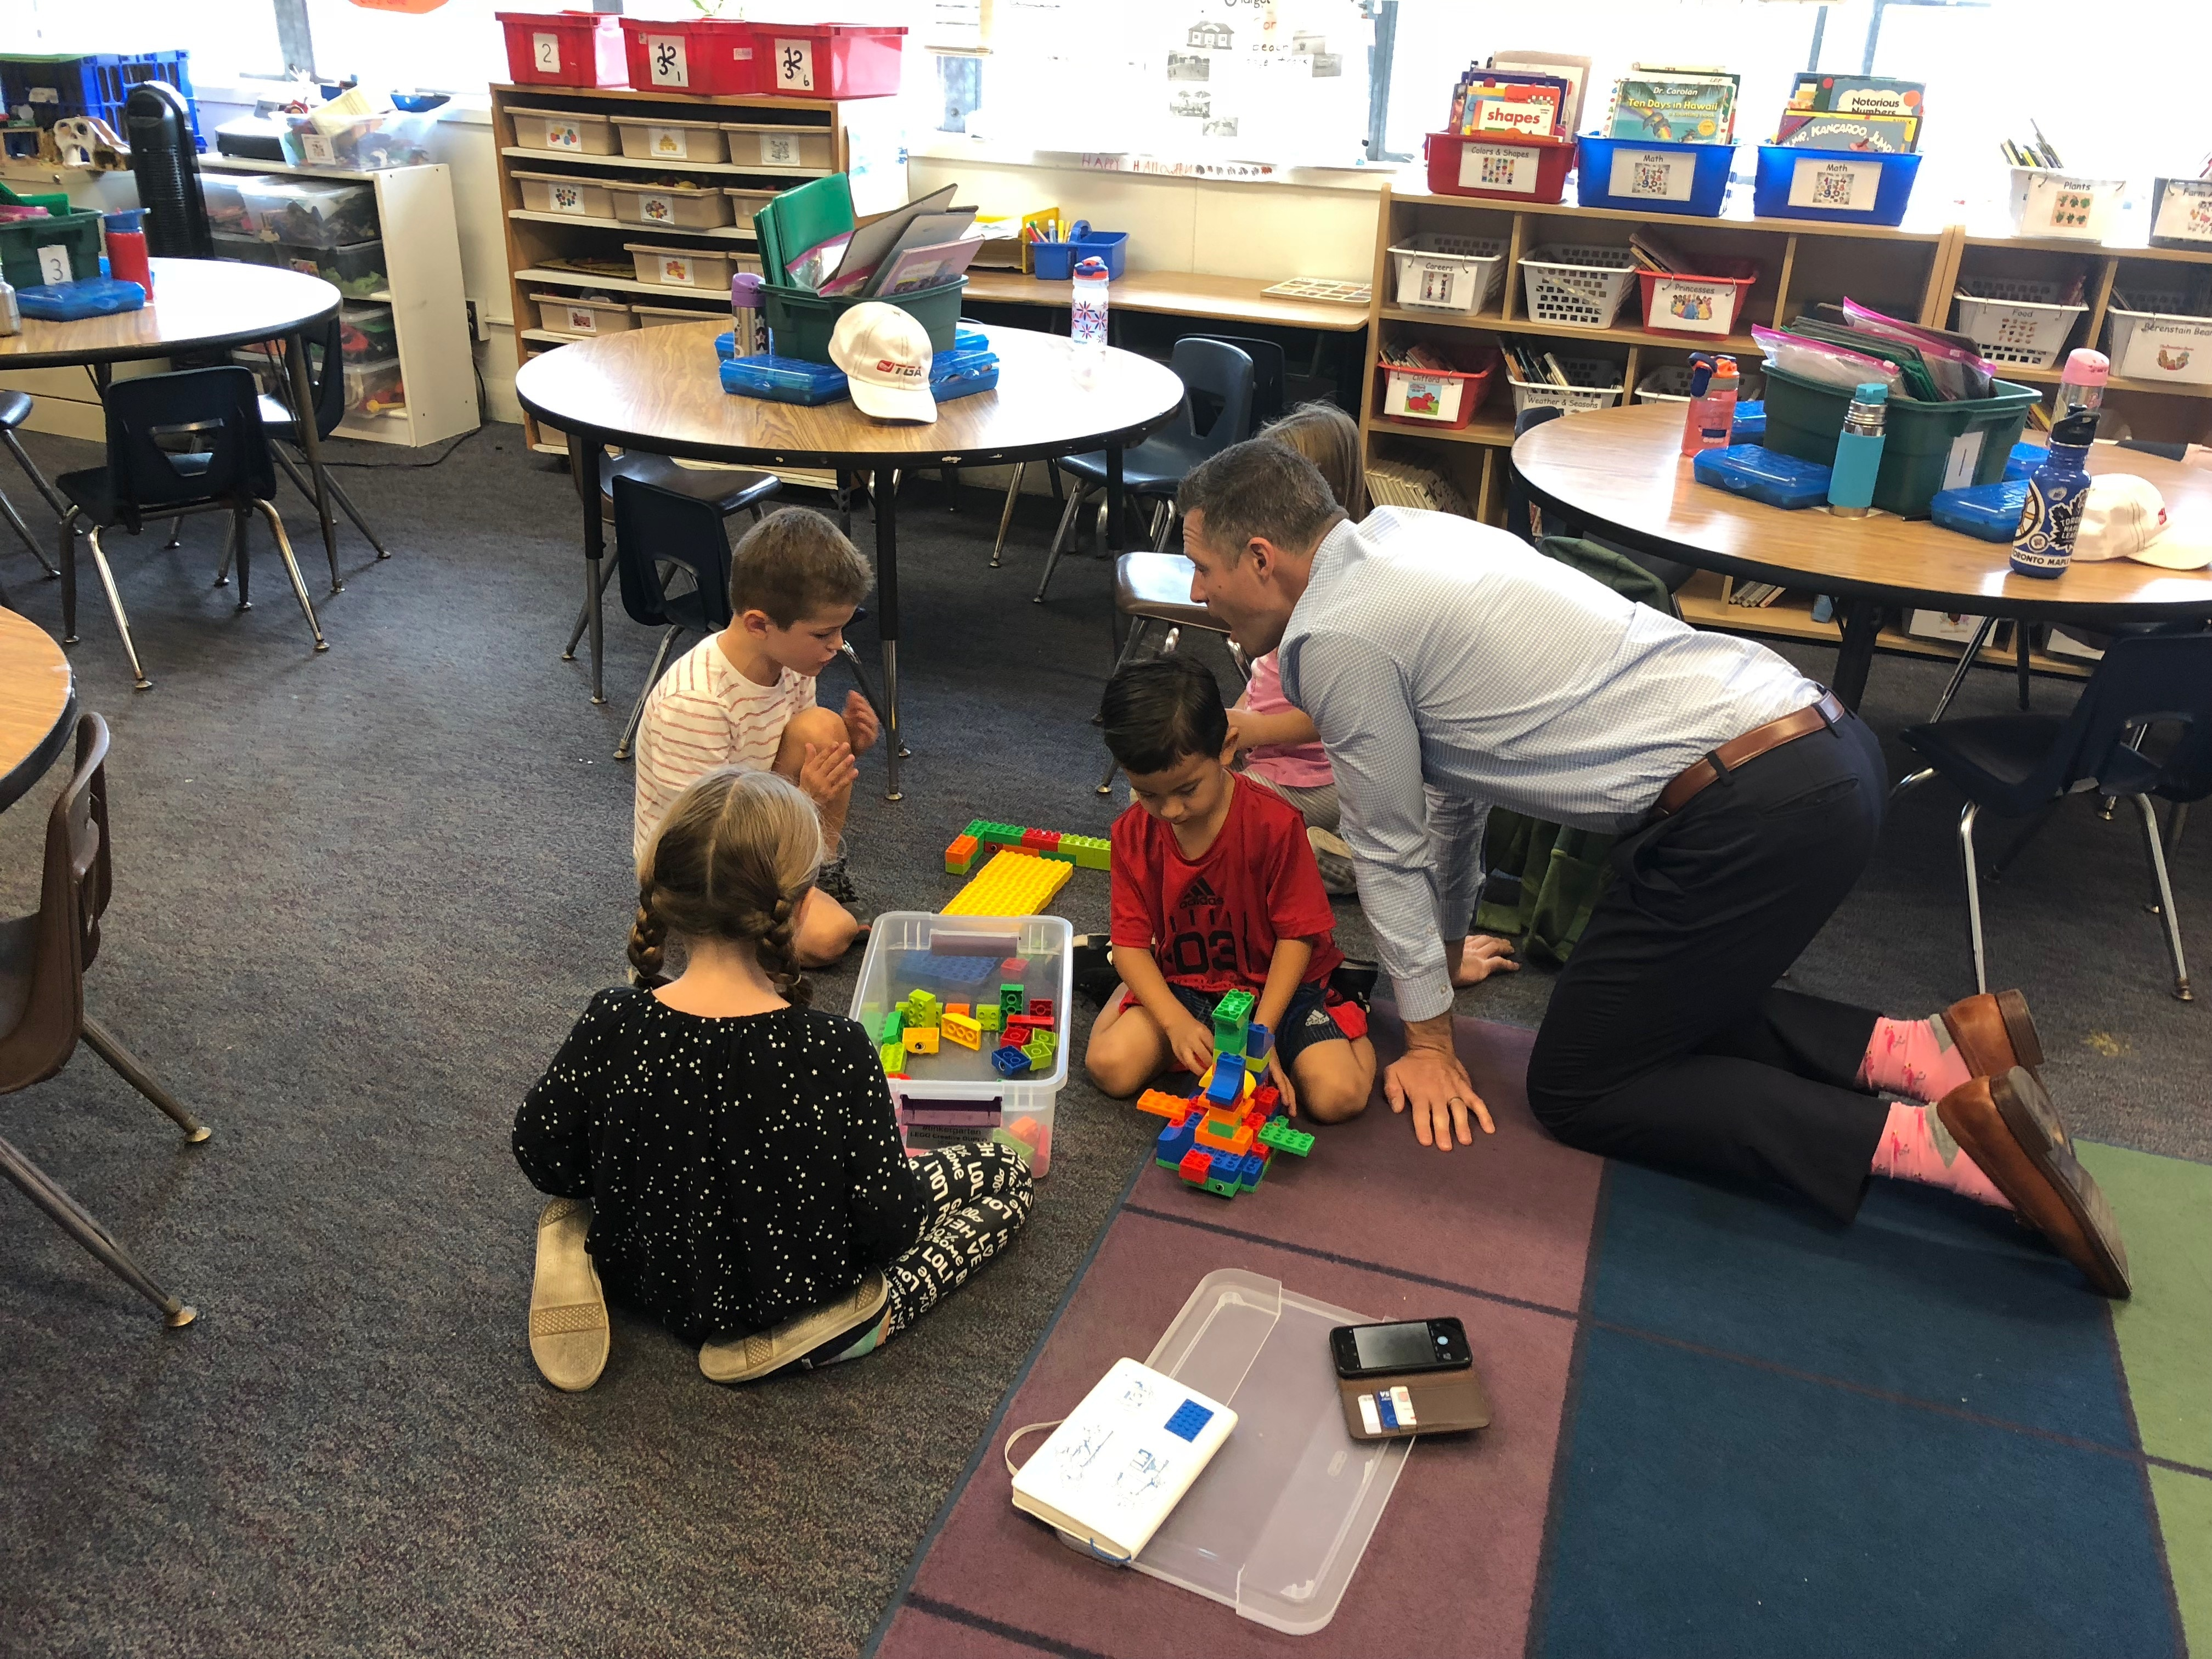 A group of kids on the floor playing with LEGO Education's Early Learning solutions. A teacher is on his hands and knees engaged with the students.